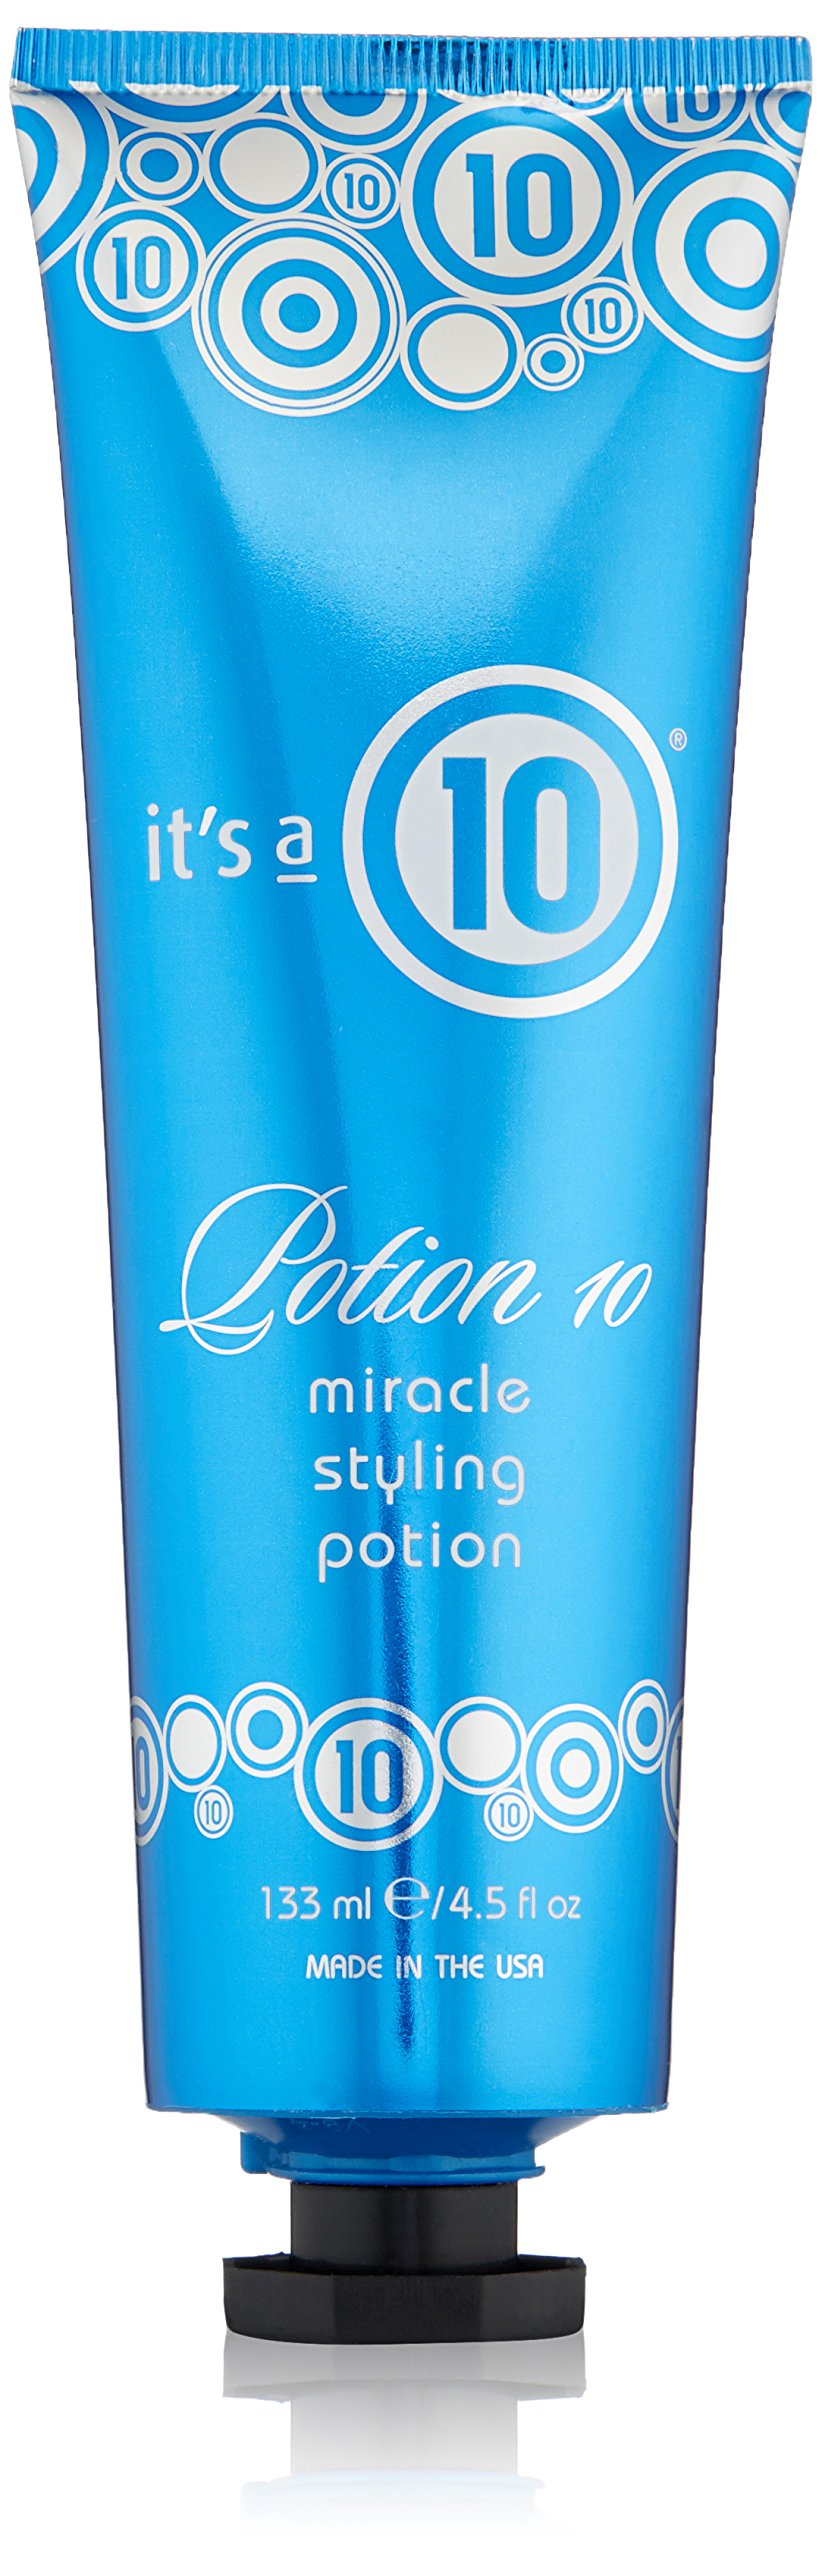 It's a 10 Haircare Potion 10 Miracle Styling Potion, 4.5 fl. oz.